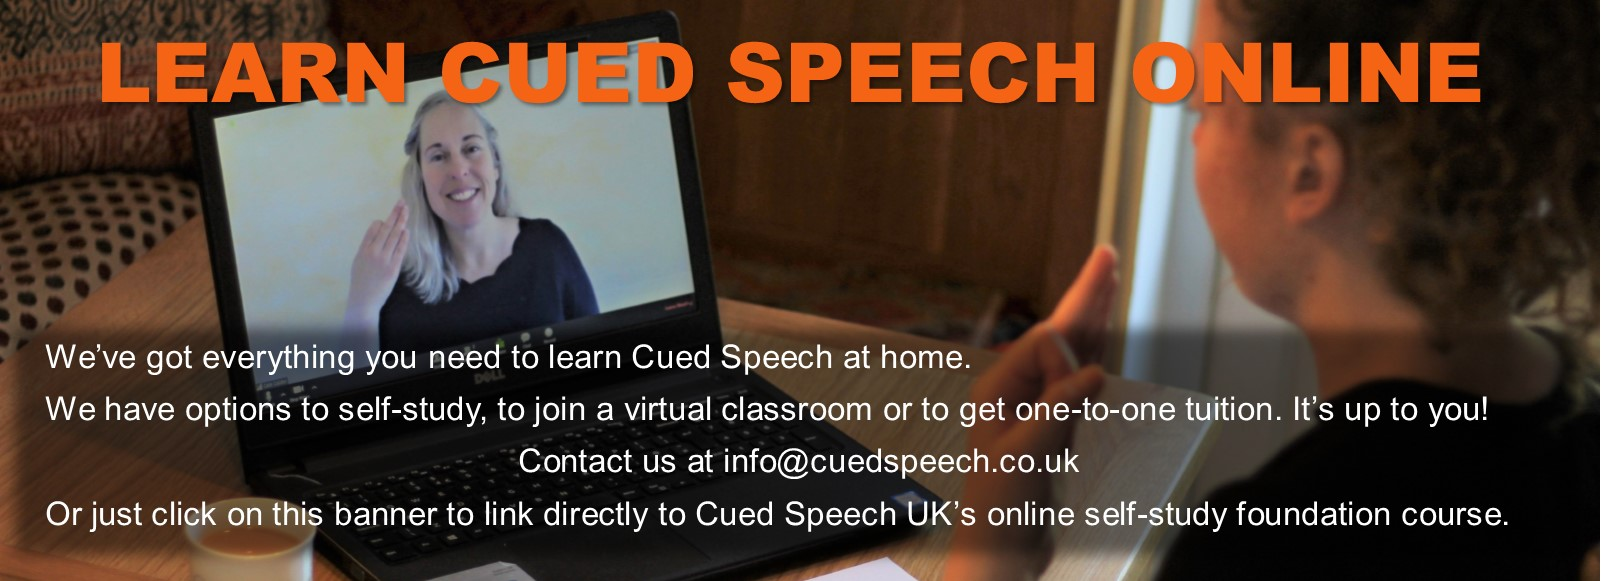 Cued Speech deaf learn sign